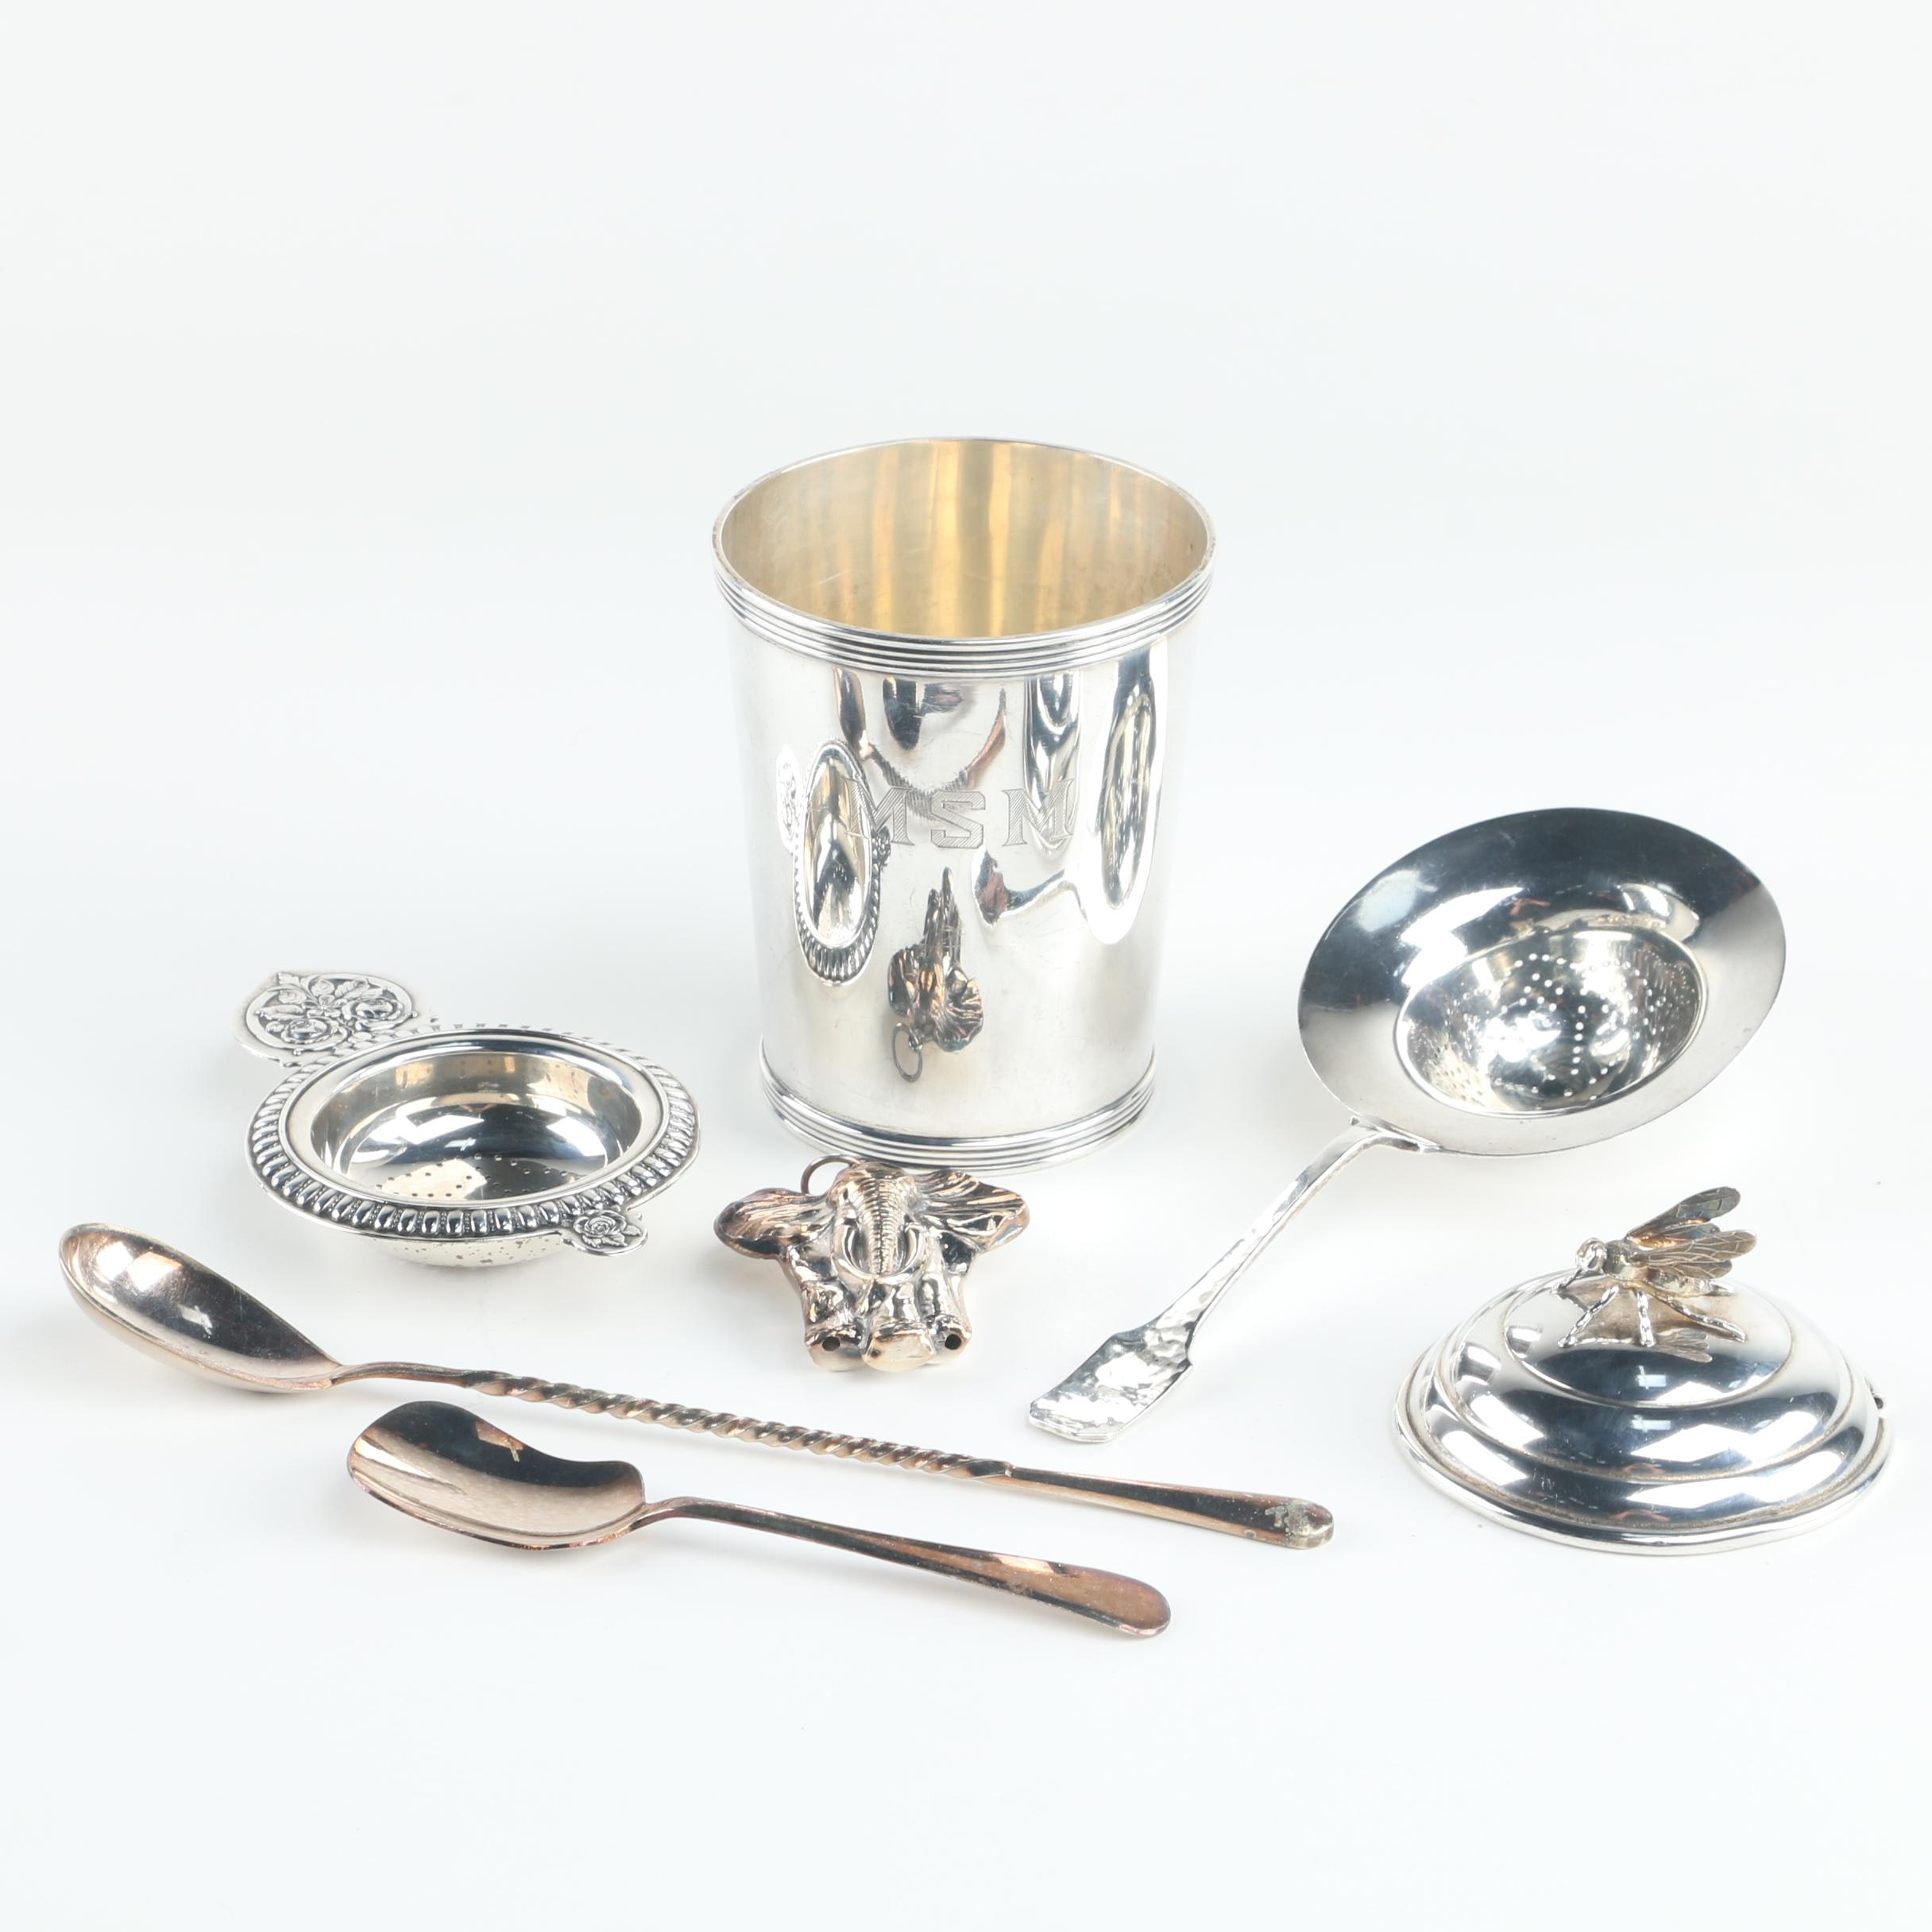 Frank W. Smith Sterling Julep Cup with Other Sterling and Plate Pieces